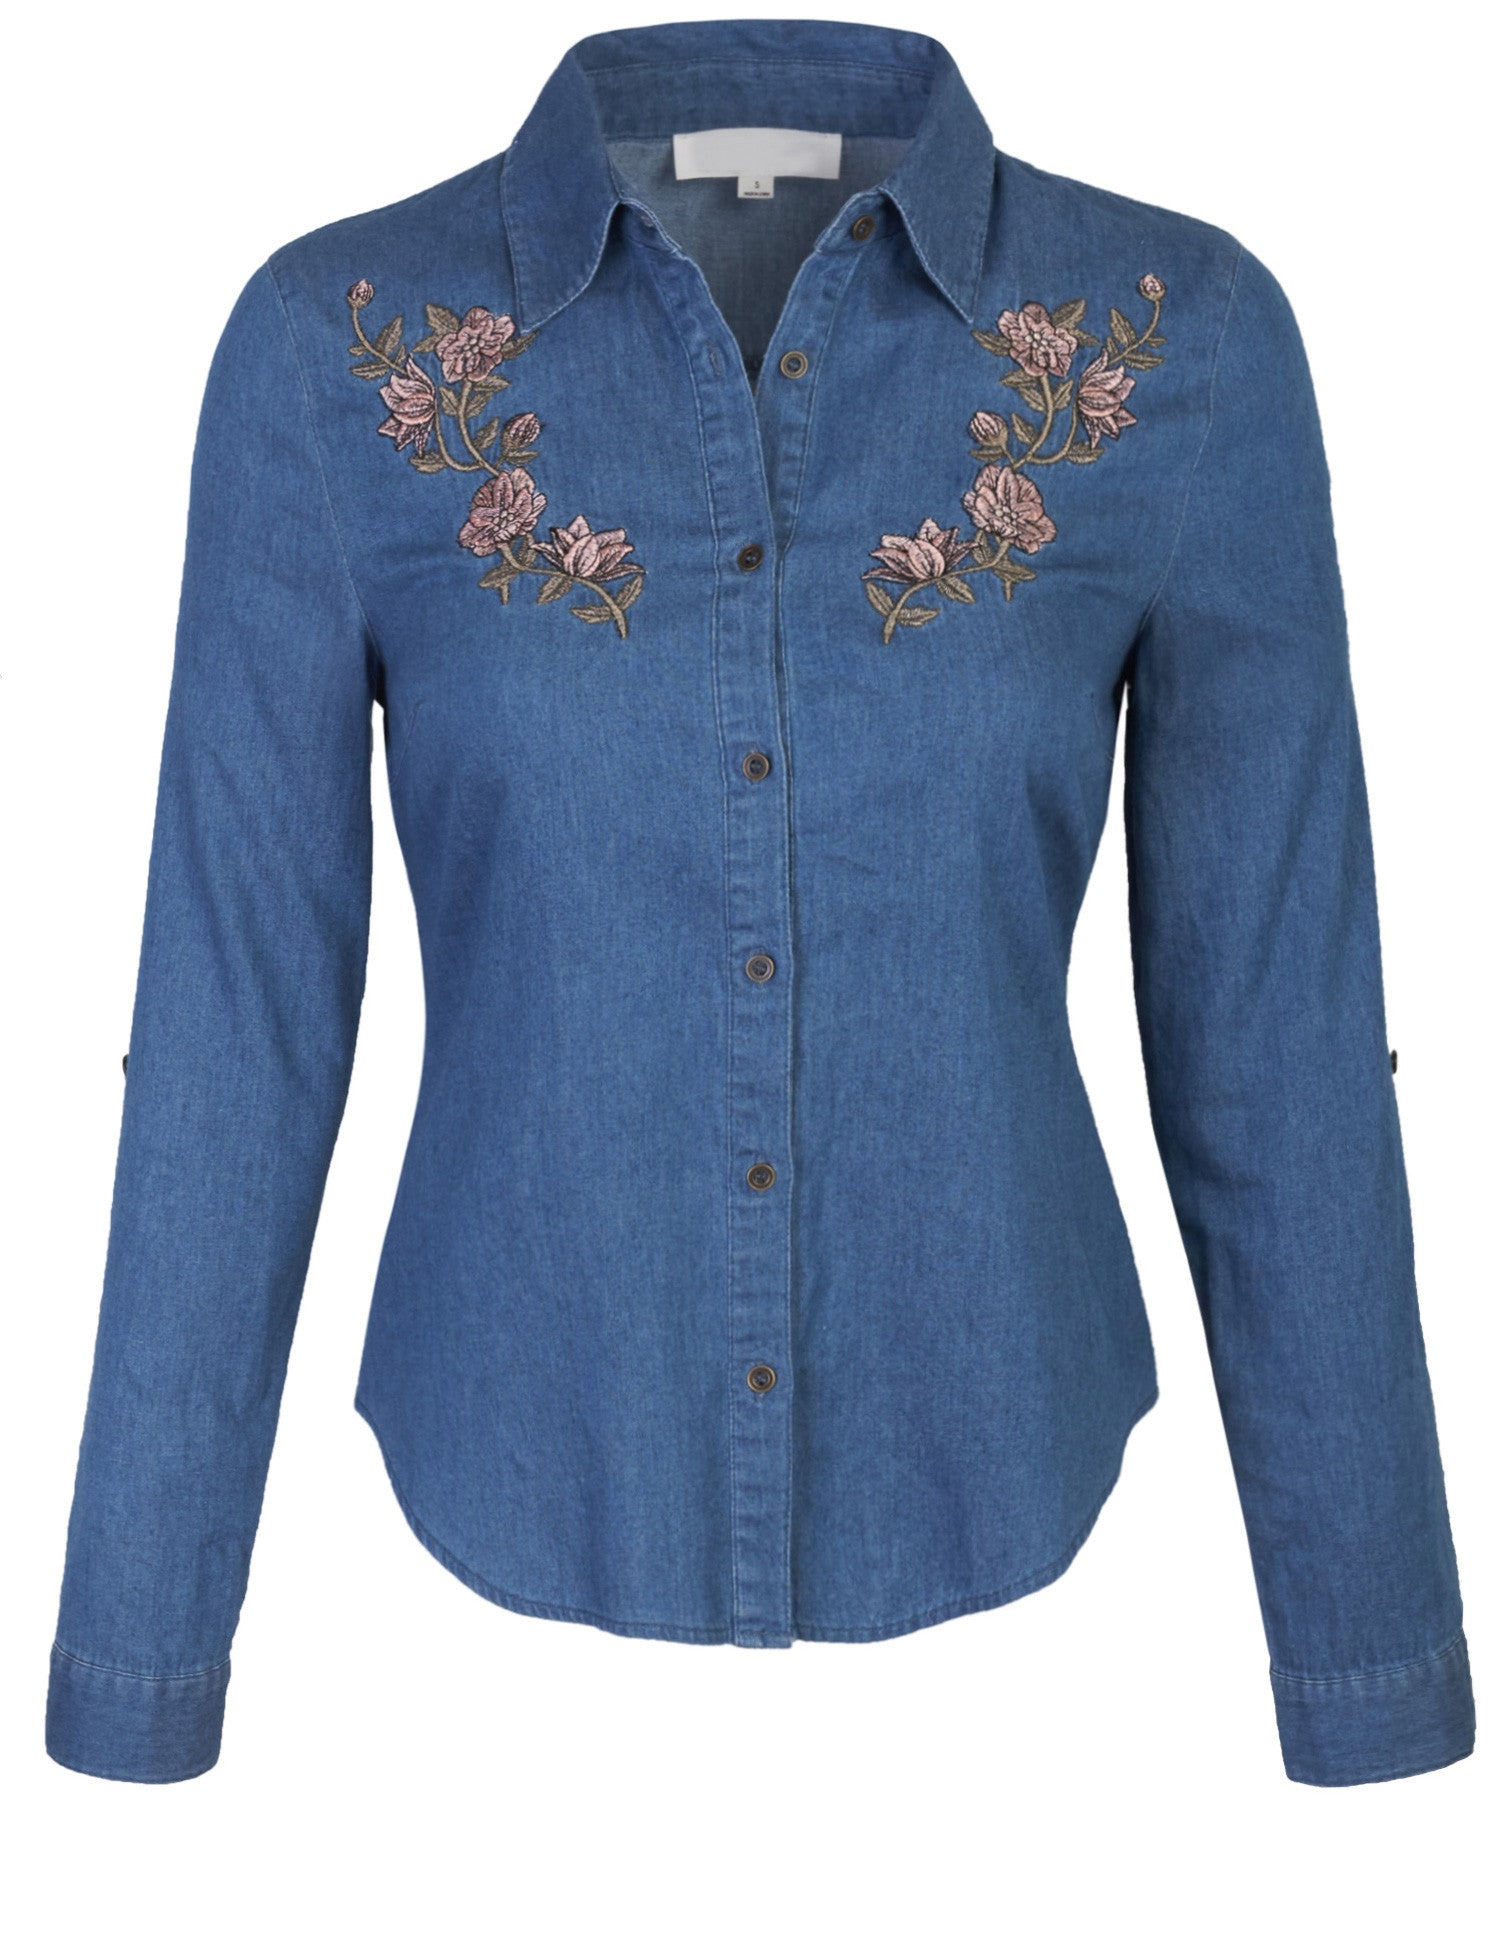 14750af9 ... Womens Long Sleeve Denim Shirt Fitted Blouse with Embroidery ...